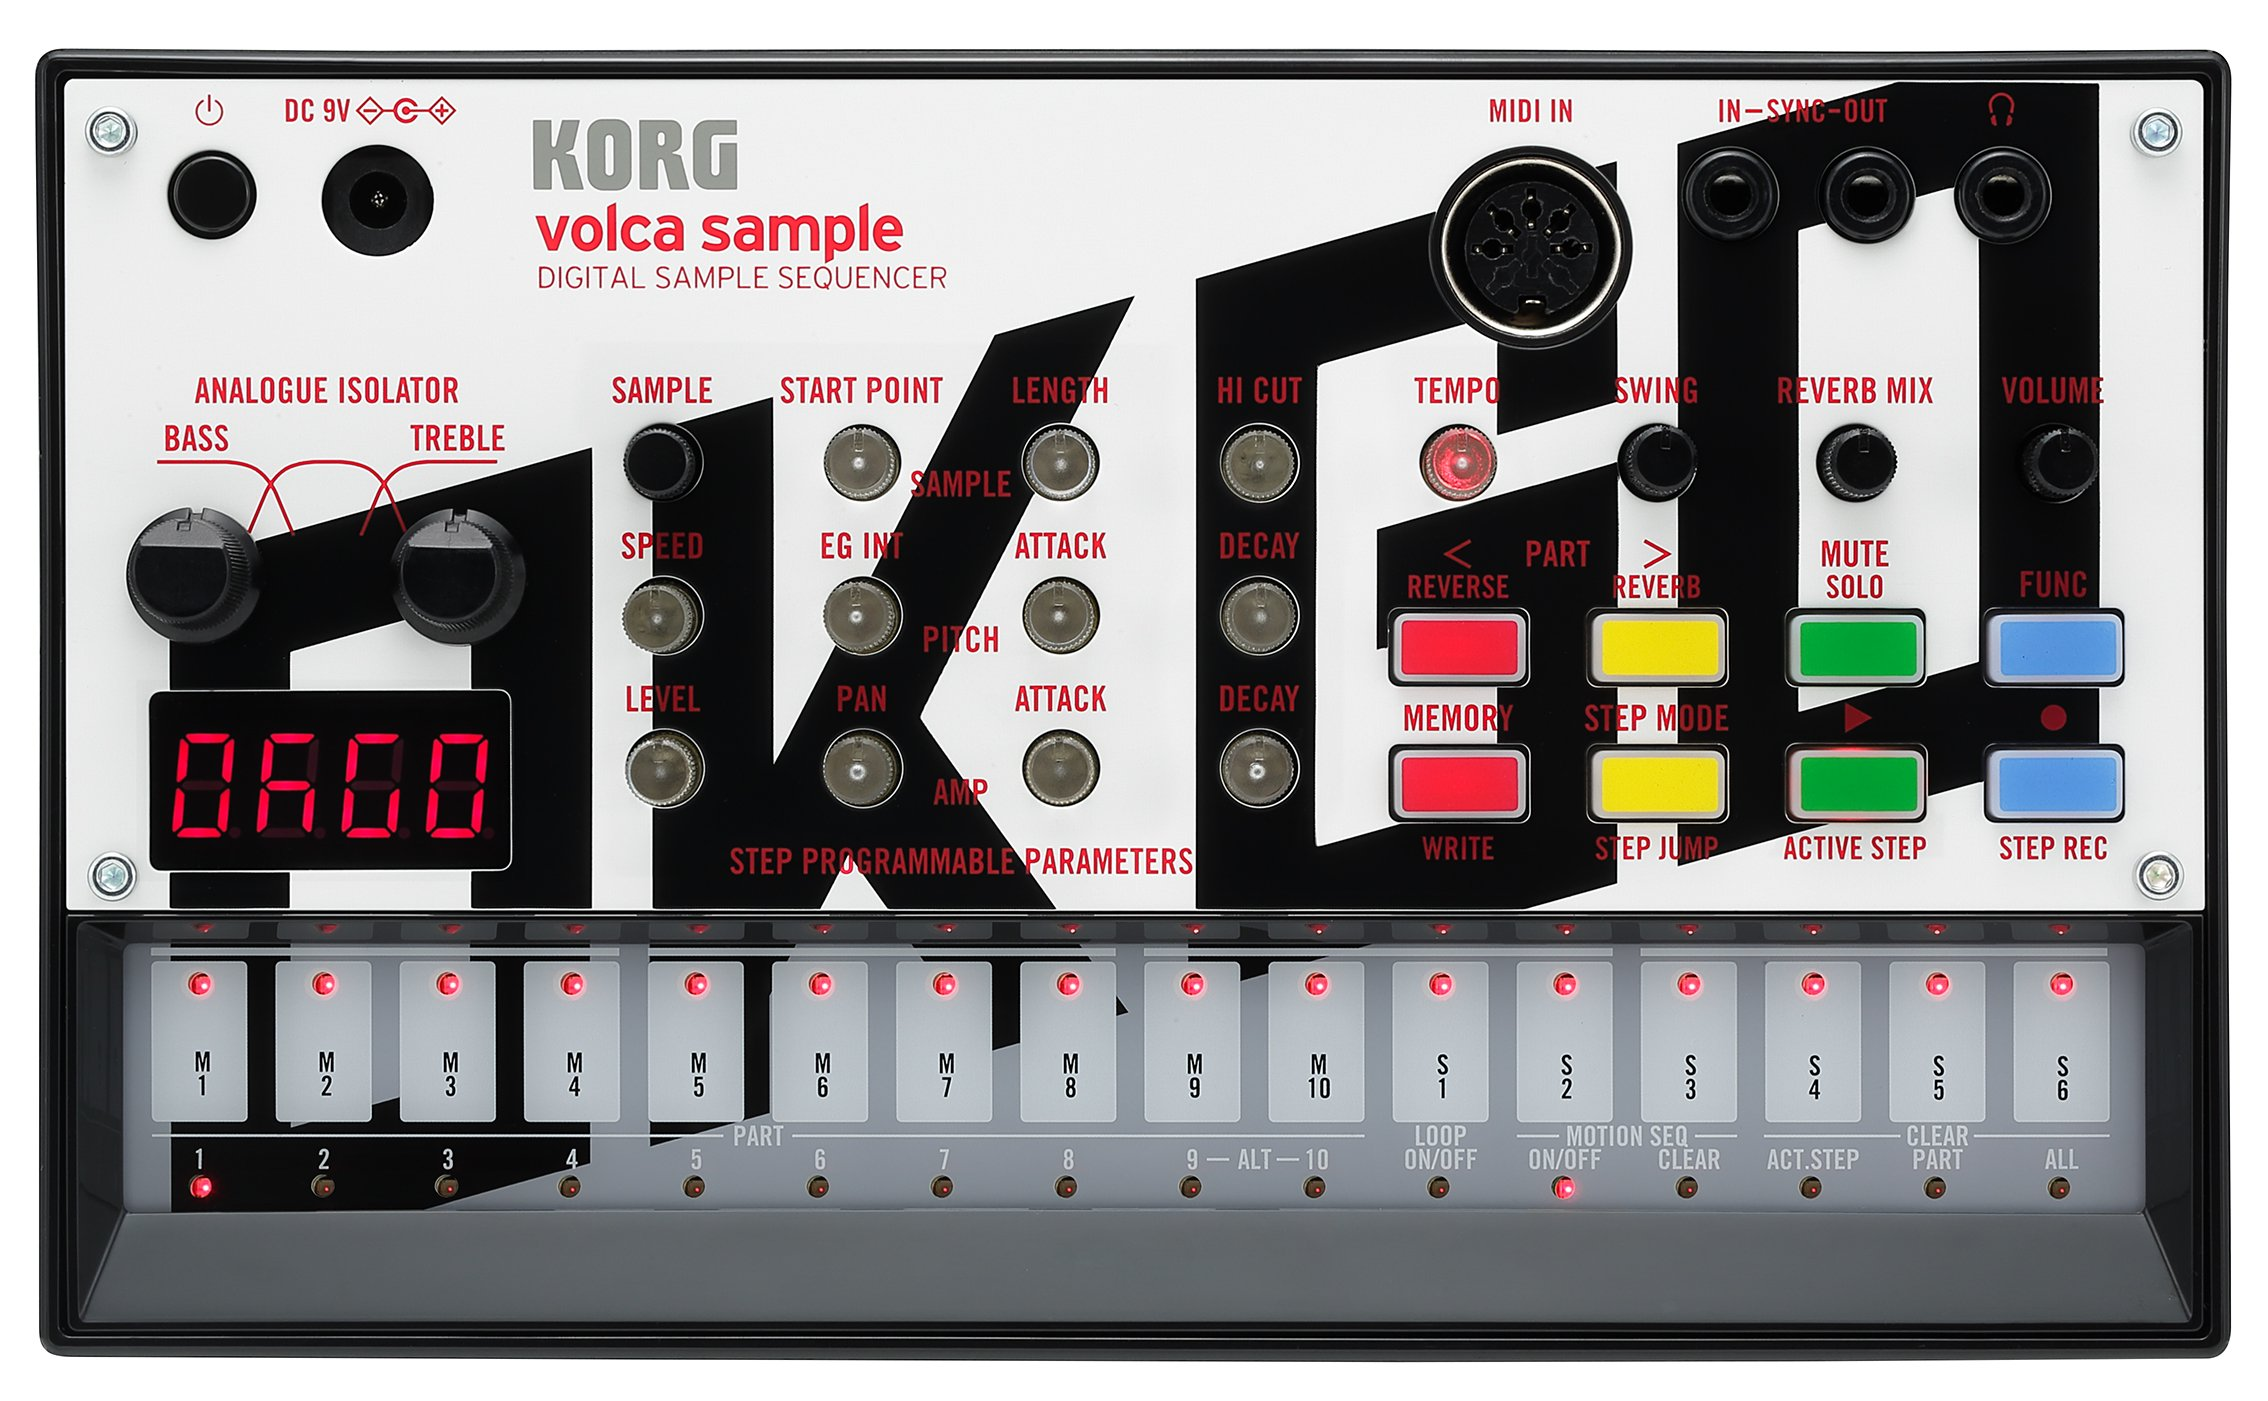 Korg VOLCAOKGO Limited Edition Version Volca Sample with Content & Panel Graphic (Created by OKGO)